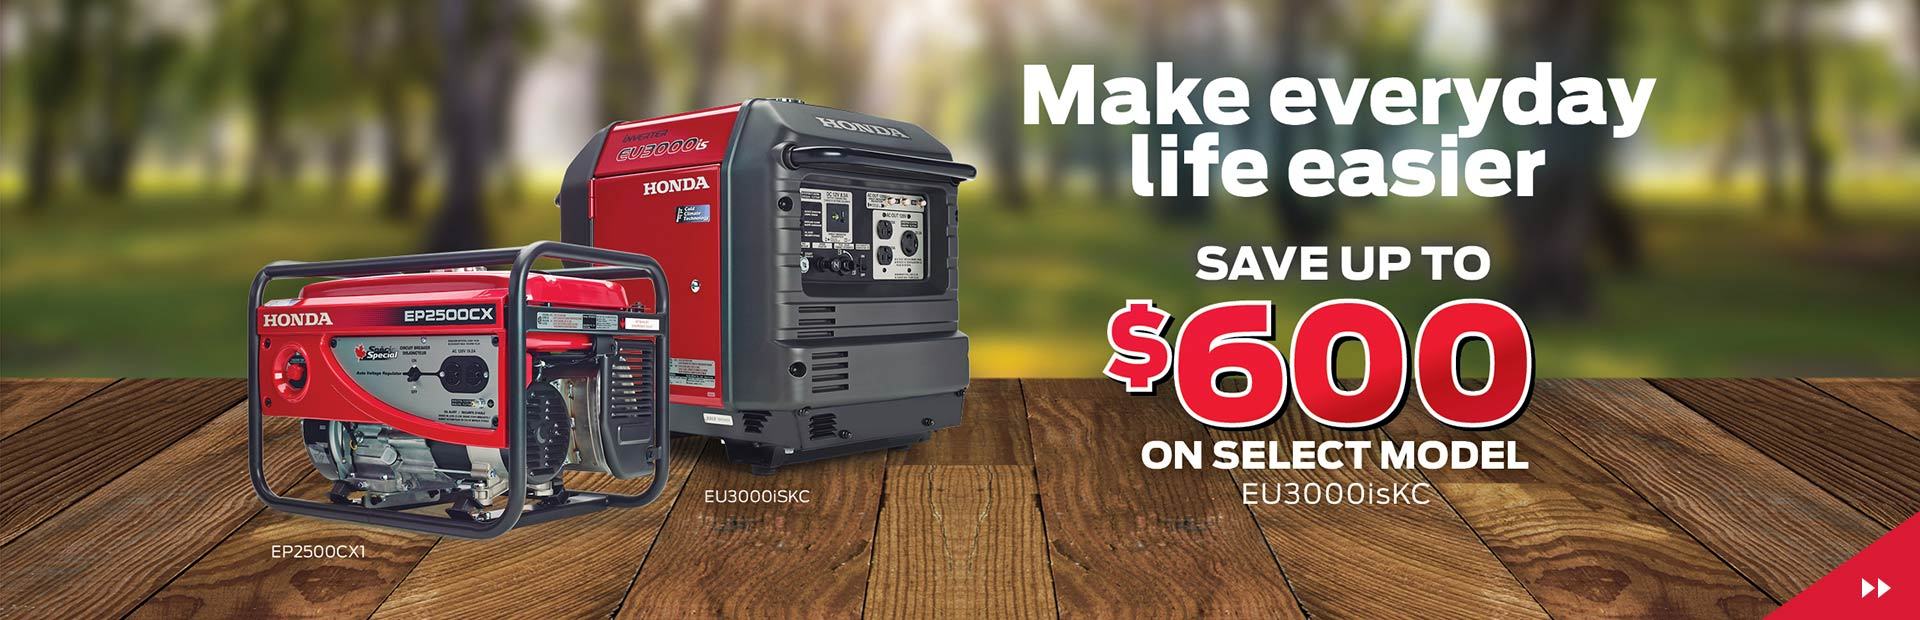 Make everyday life easier! Save Up To $600 on the EU3000isKC